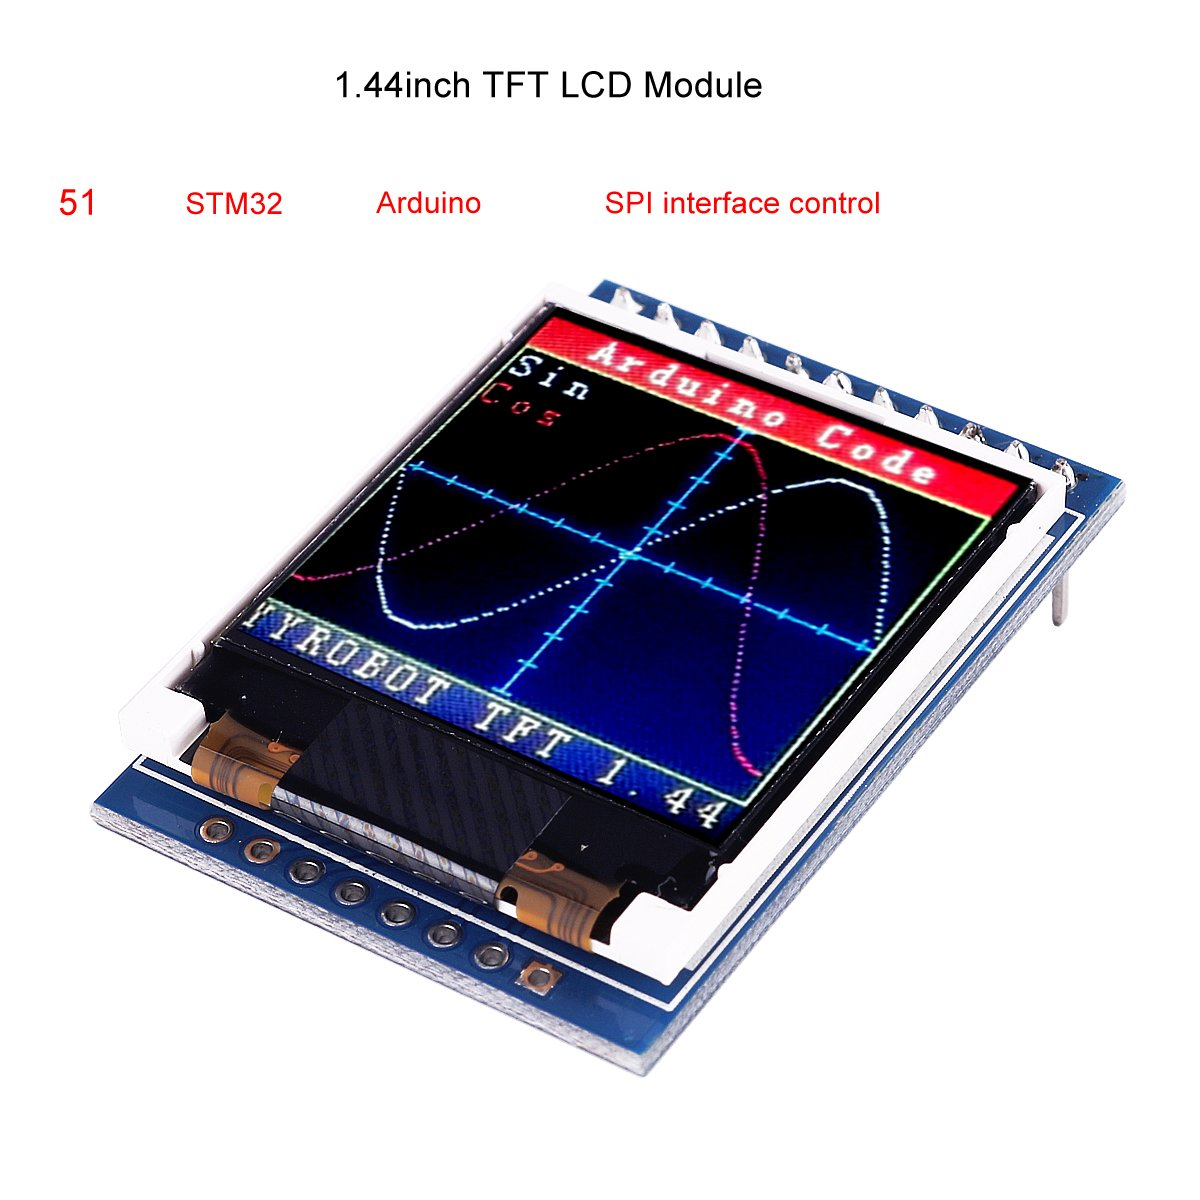 Buy MakerFocus TFT LCD Screen 1 44 inches TFT LCD Module, 128x128